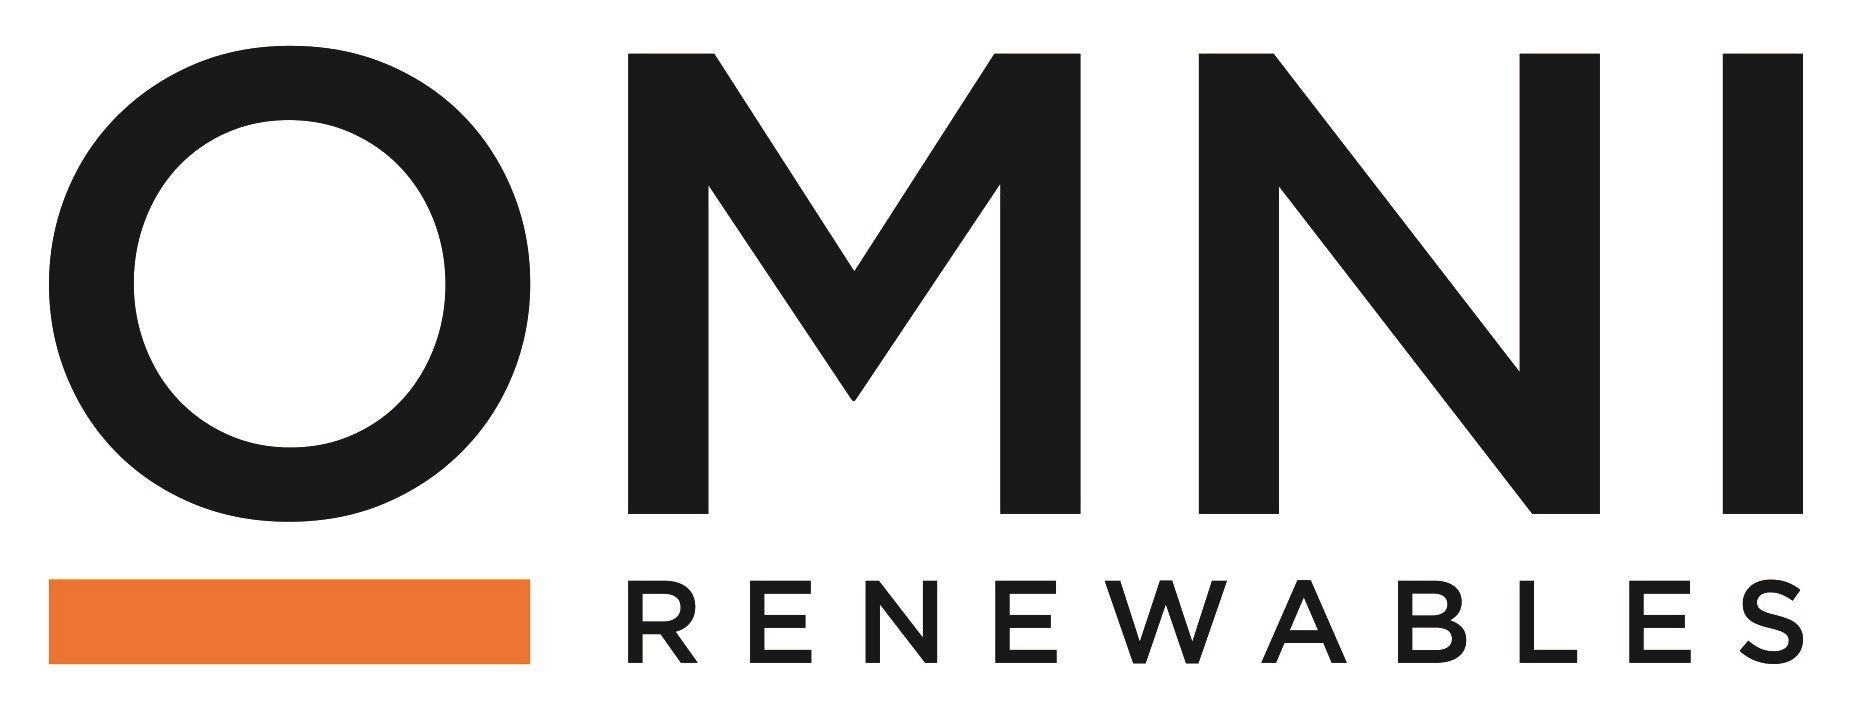 Omni-Renewables-Logo-Dark-Text-For-Light-Backgrounds Croped